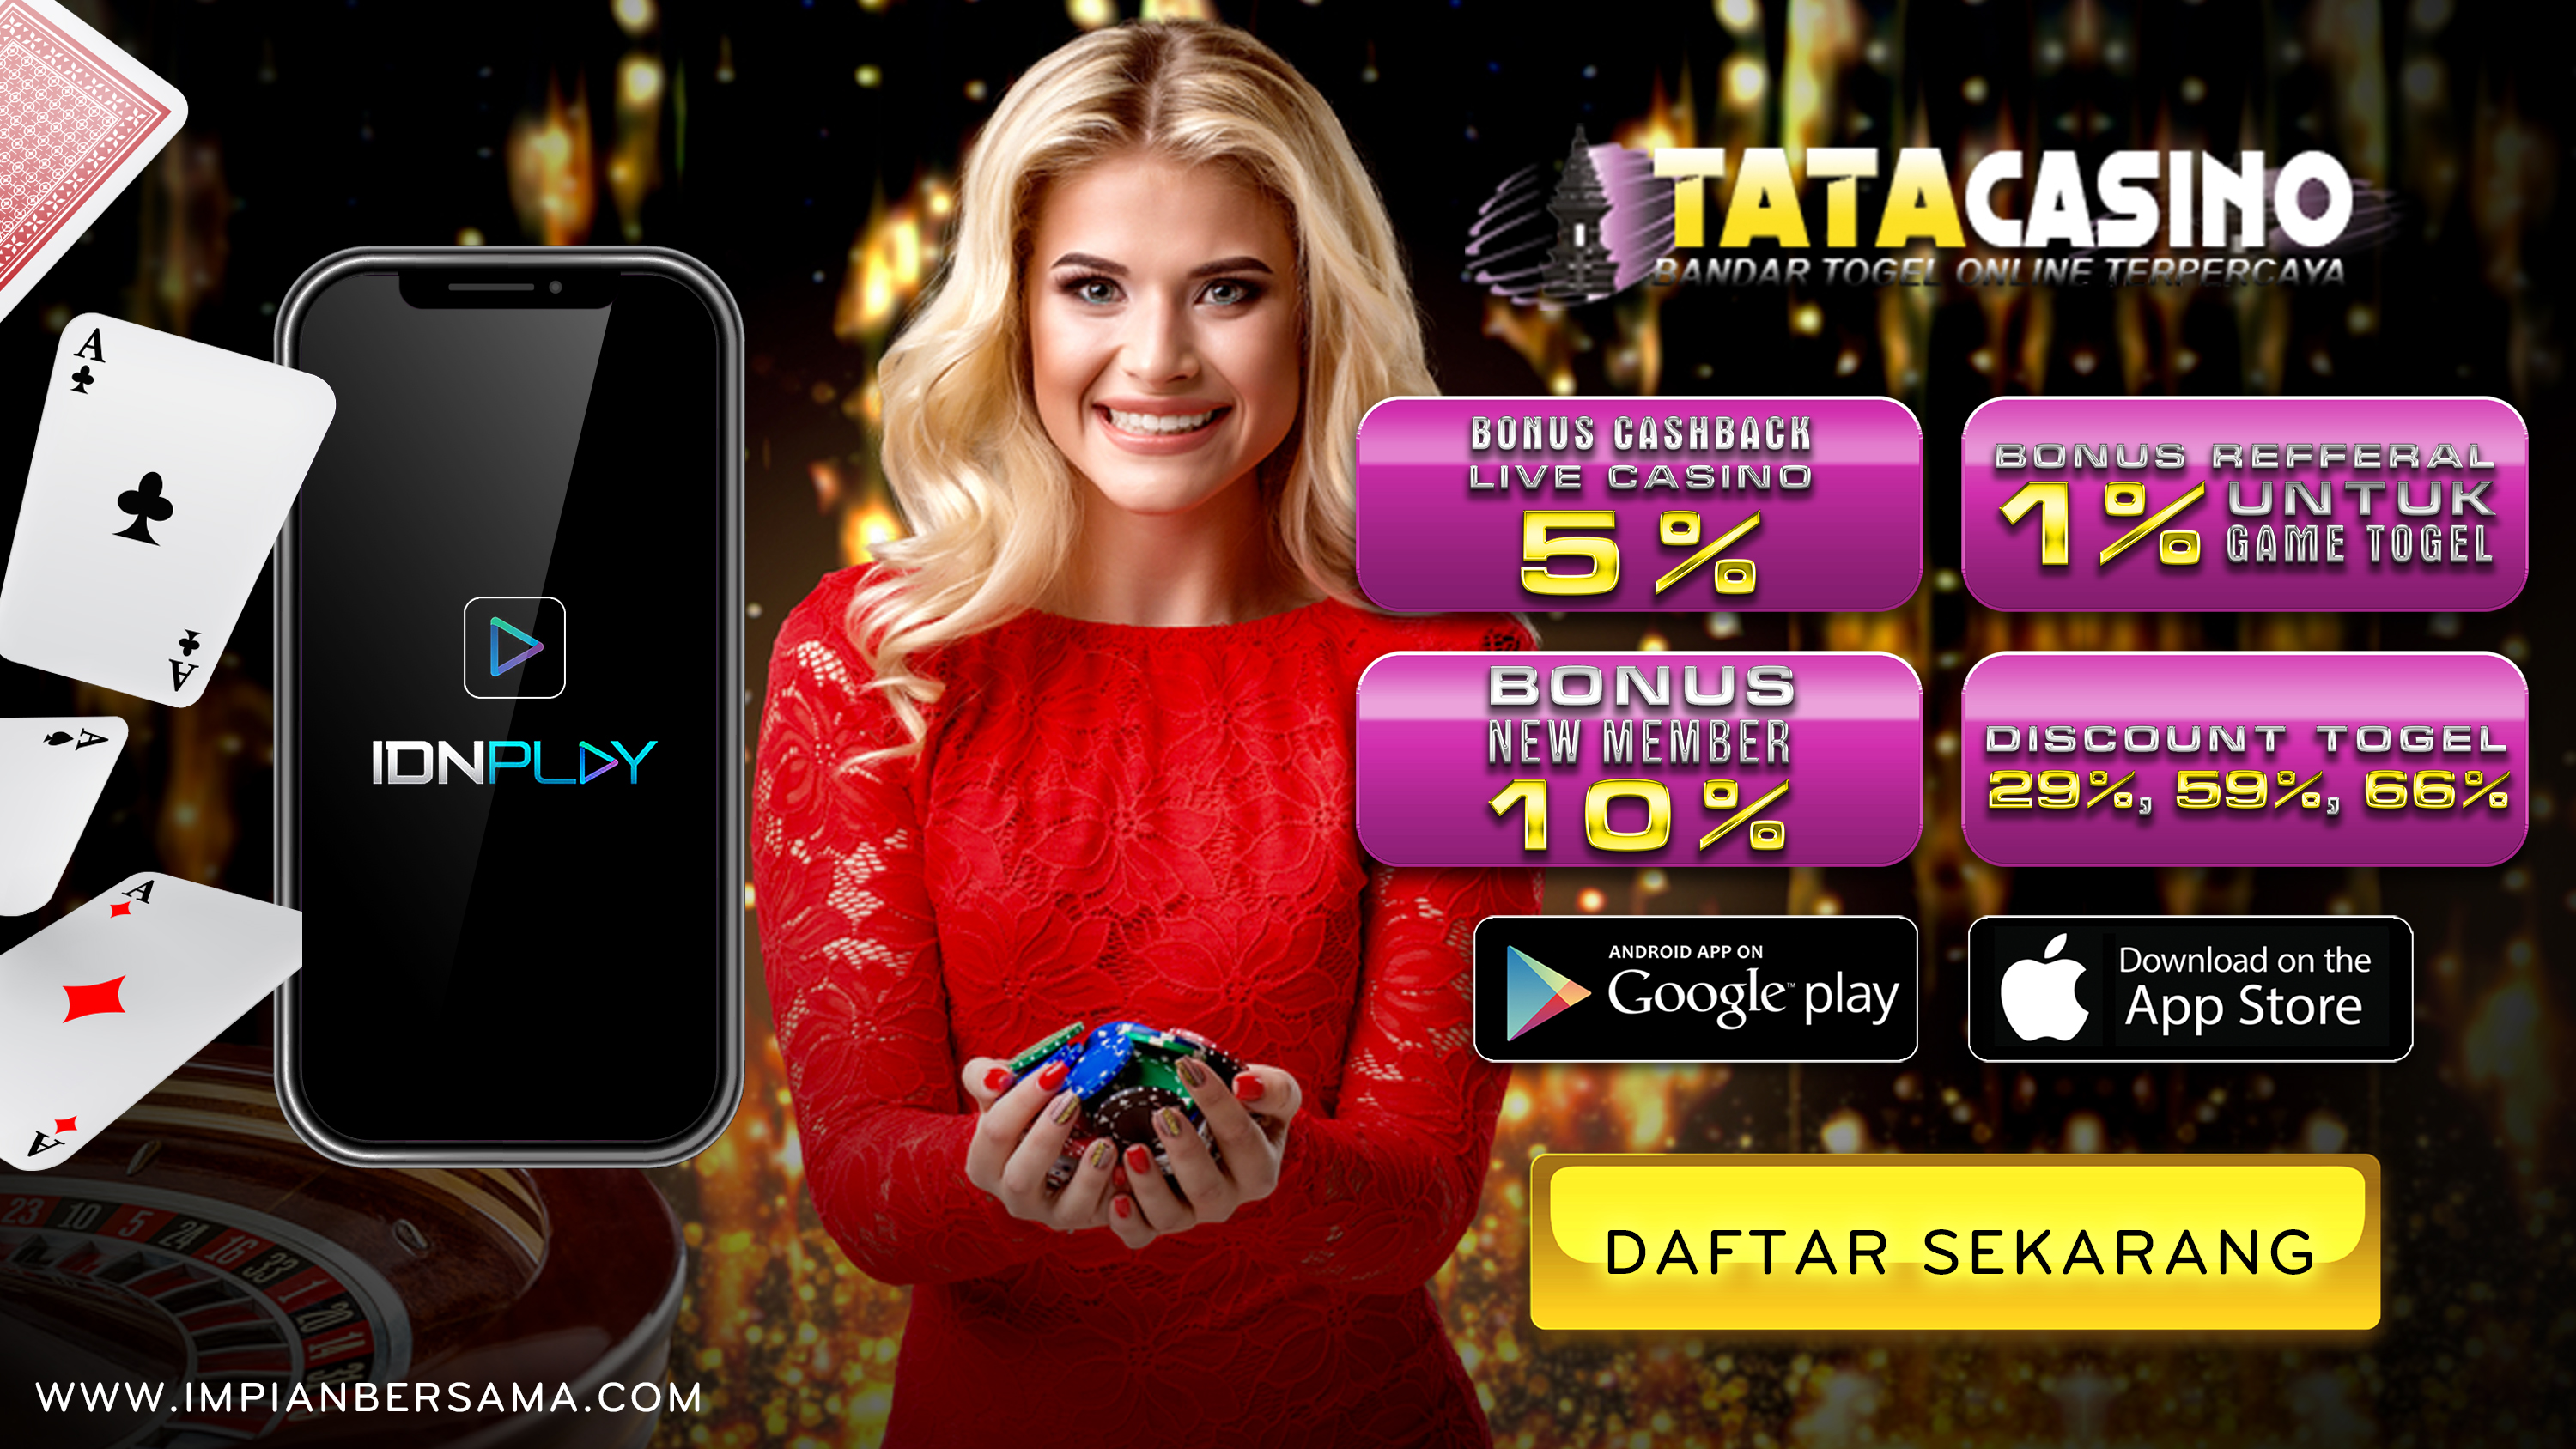 Tips Bermain Togel, Tatacasino, Togel Online, 2D 3D 4D